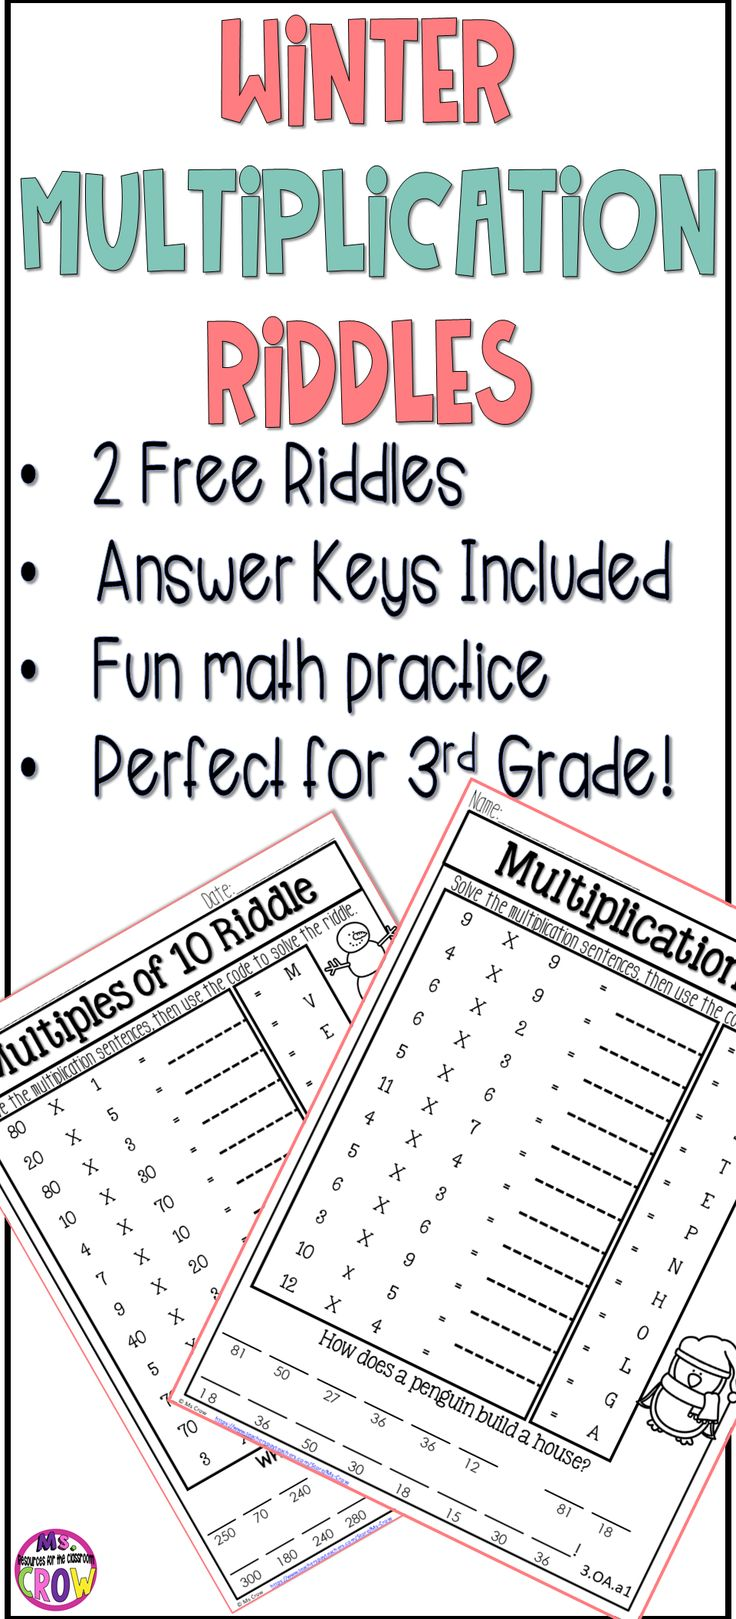 Best 25 maths times tables ideas on pinterest math tables two multiplication riddlesjokes combined with multiplication practice answer gamestrikefo Gallery